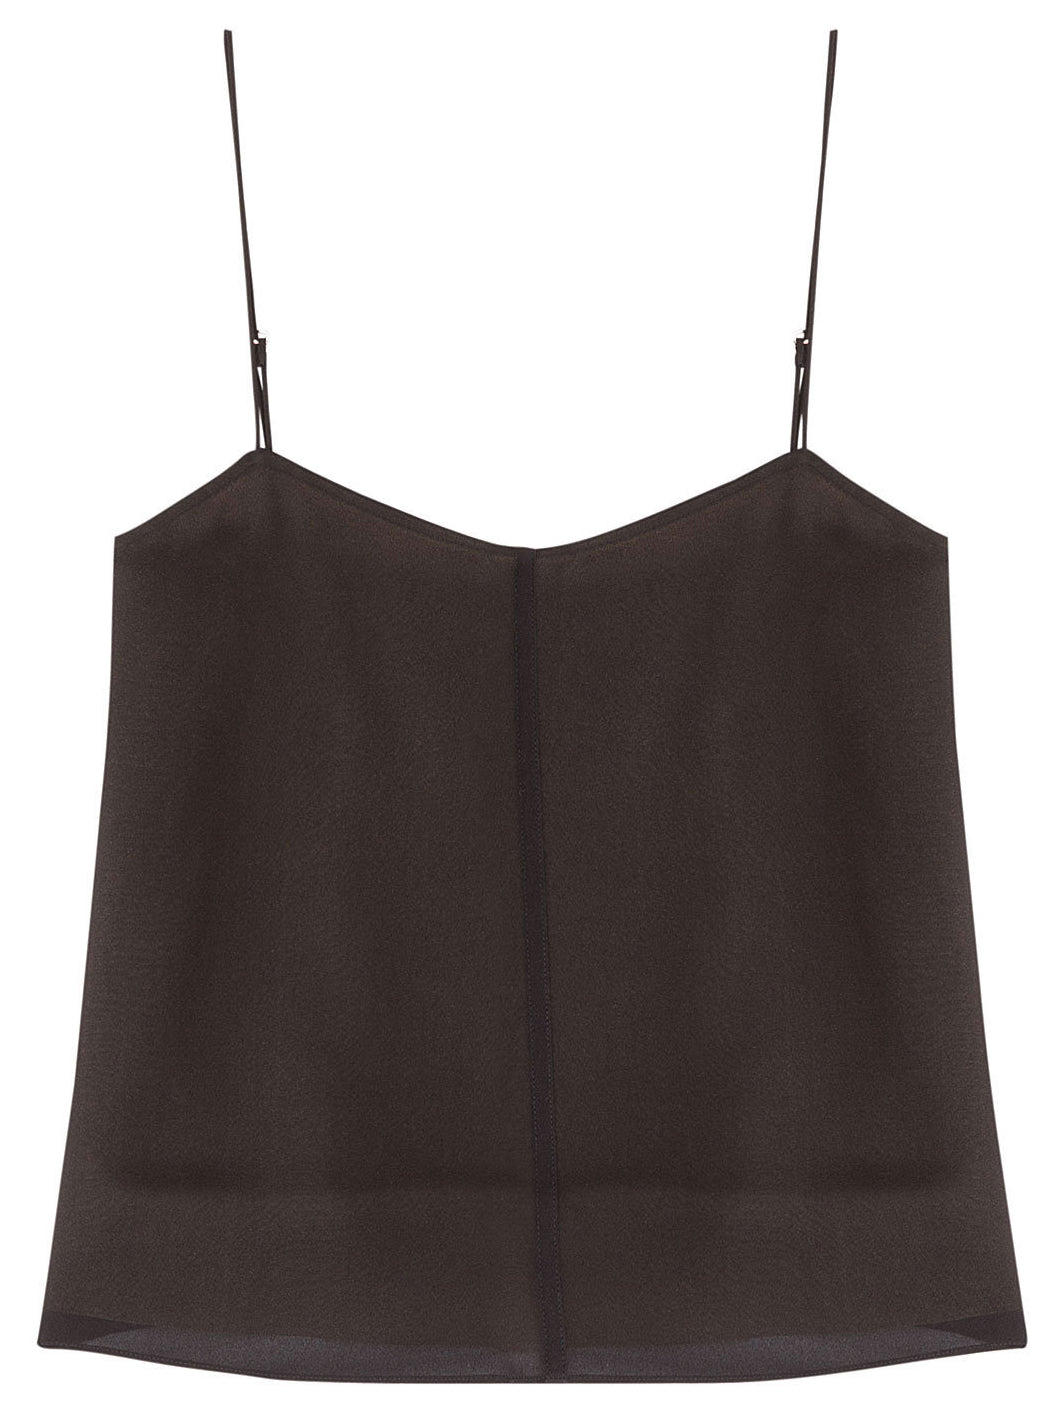 T by Alexander Wang - Black silk camisole top